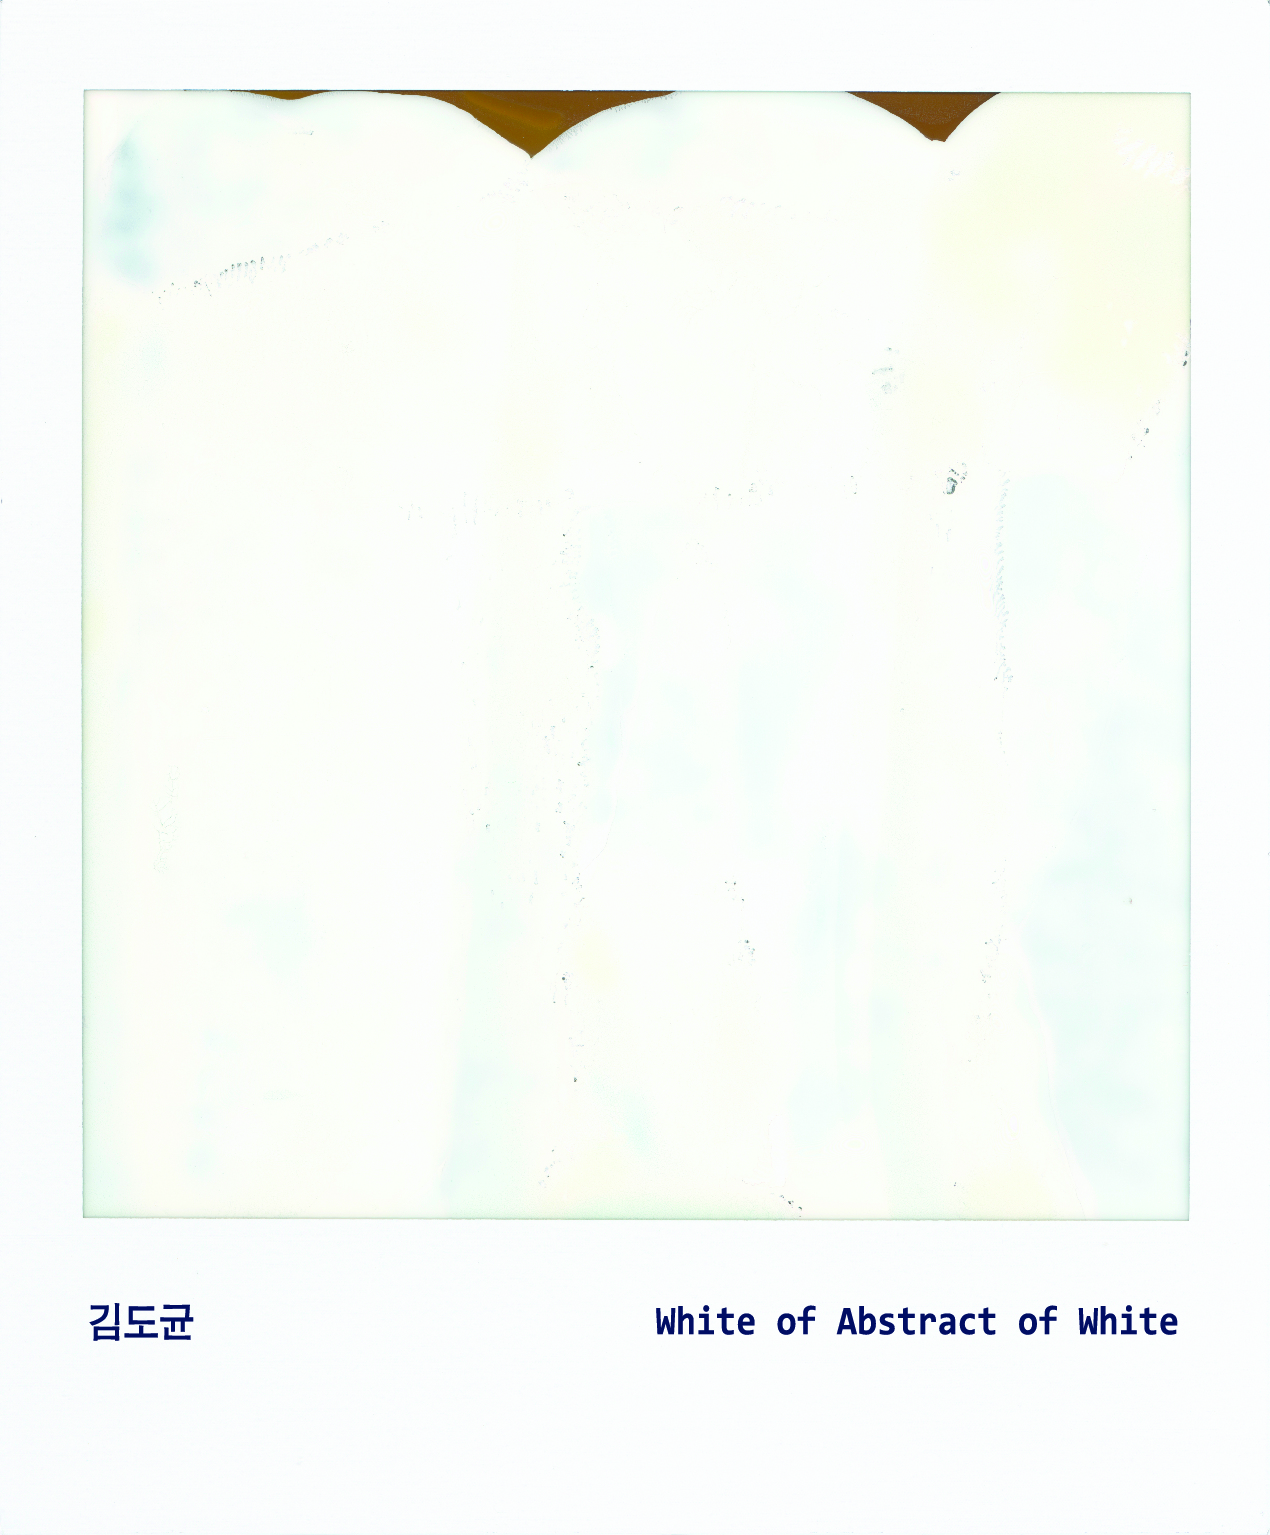 White of Abstract of White